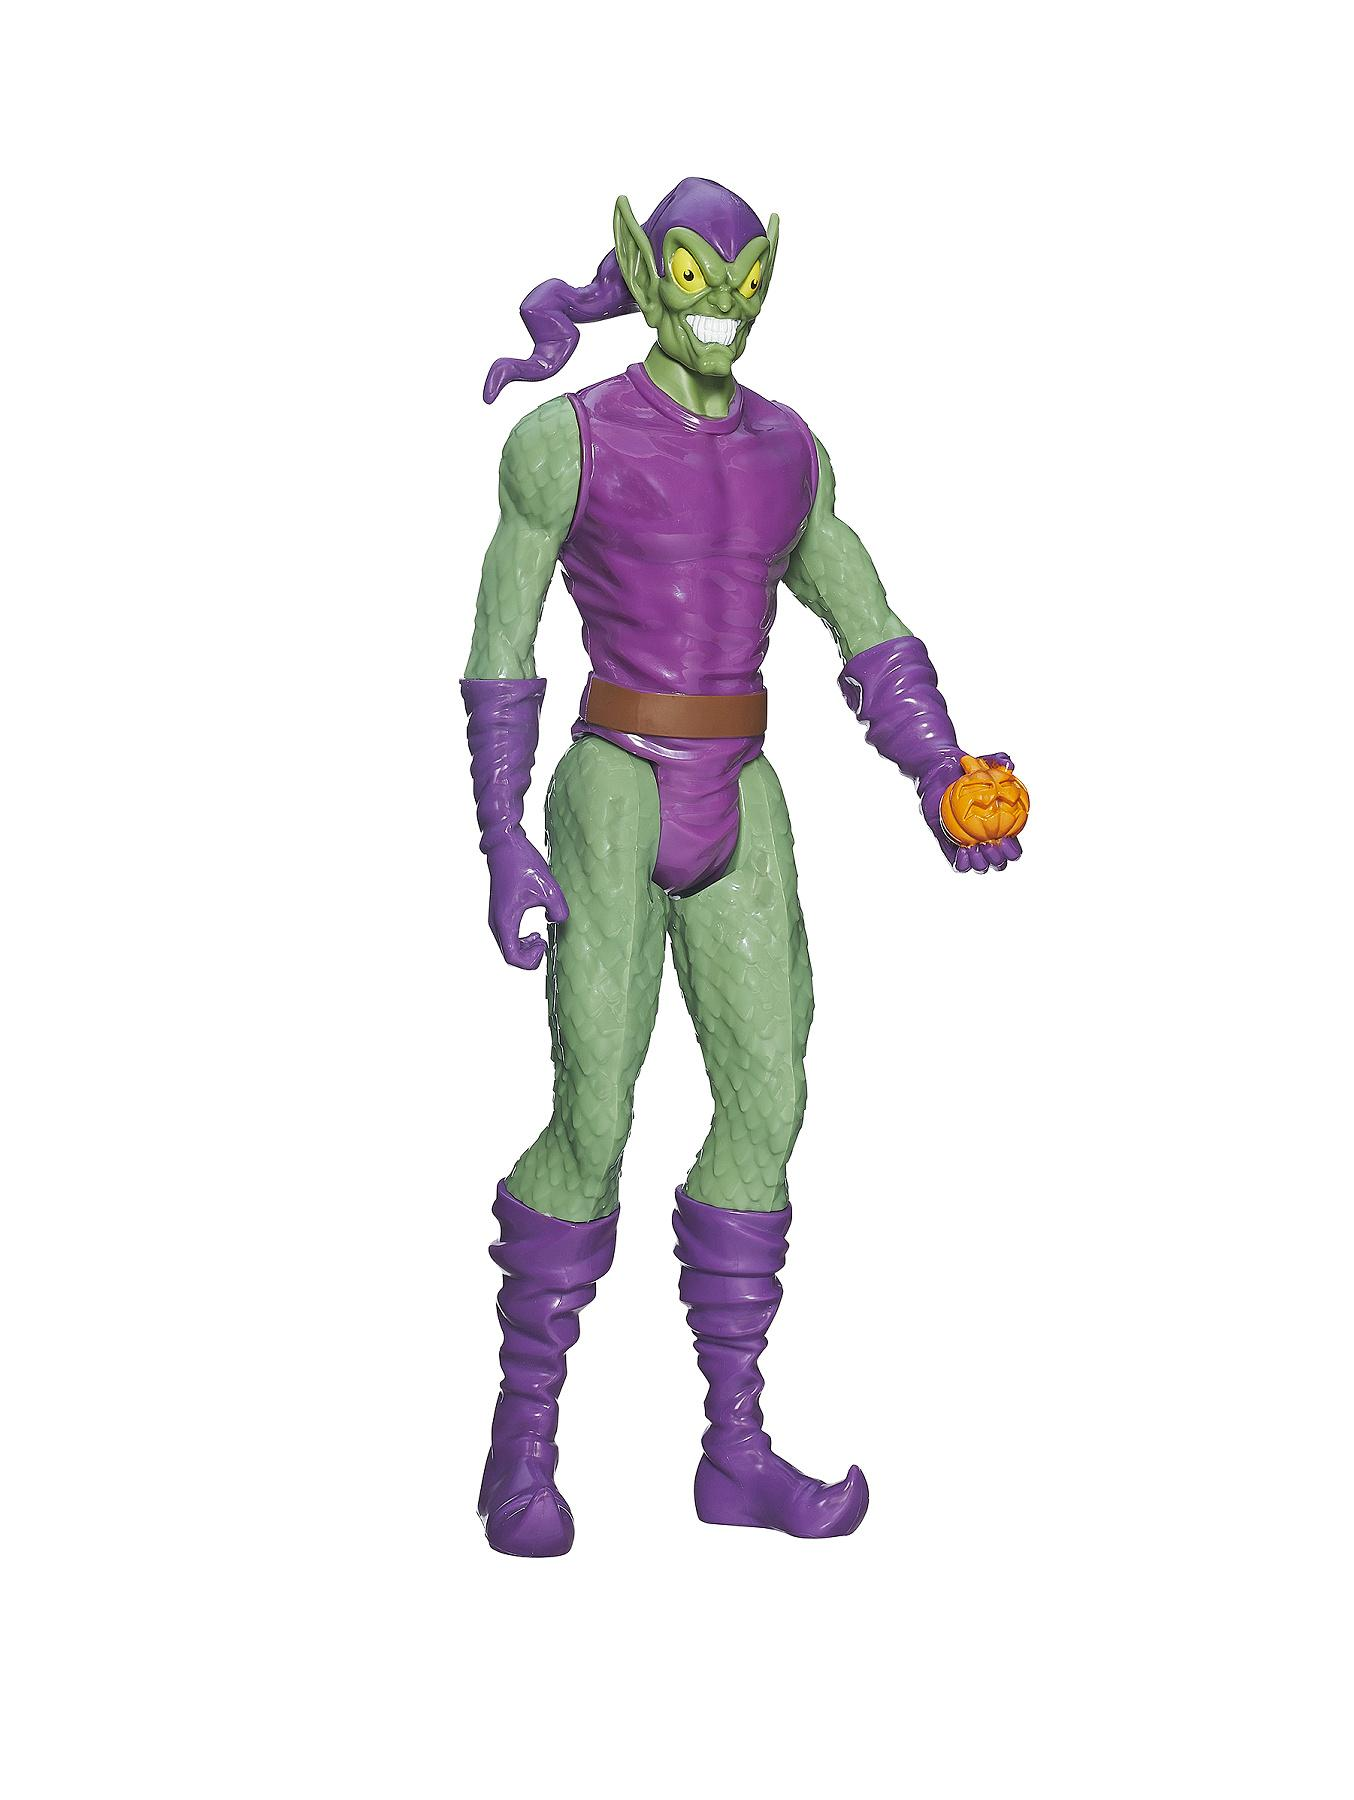 Spiderman Marvel Ultimate Spiderman Titan Hero Series - Green Goblin Figure